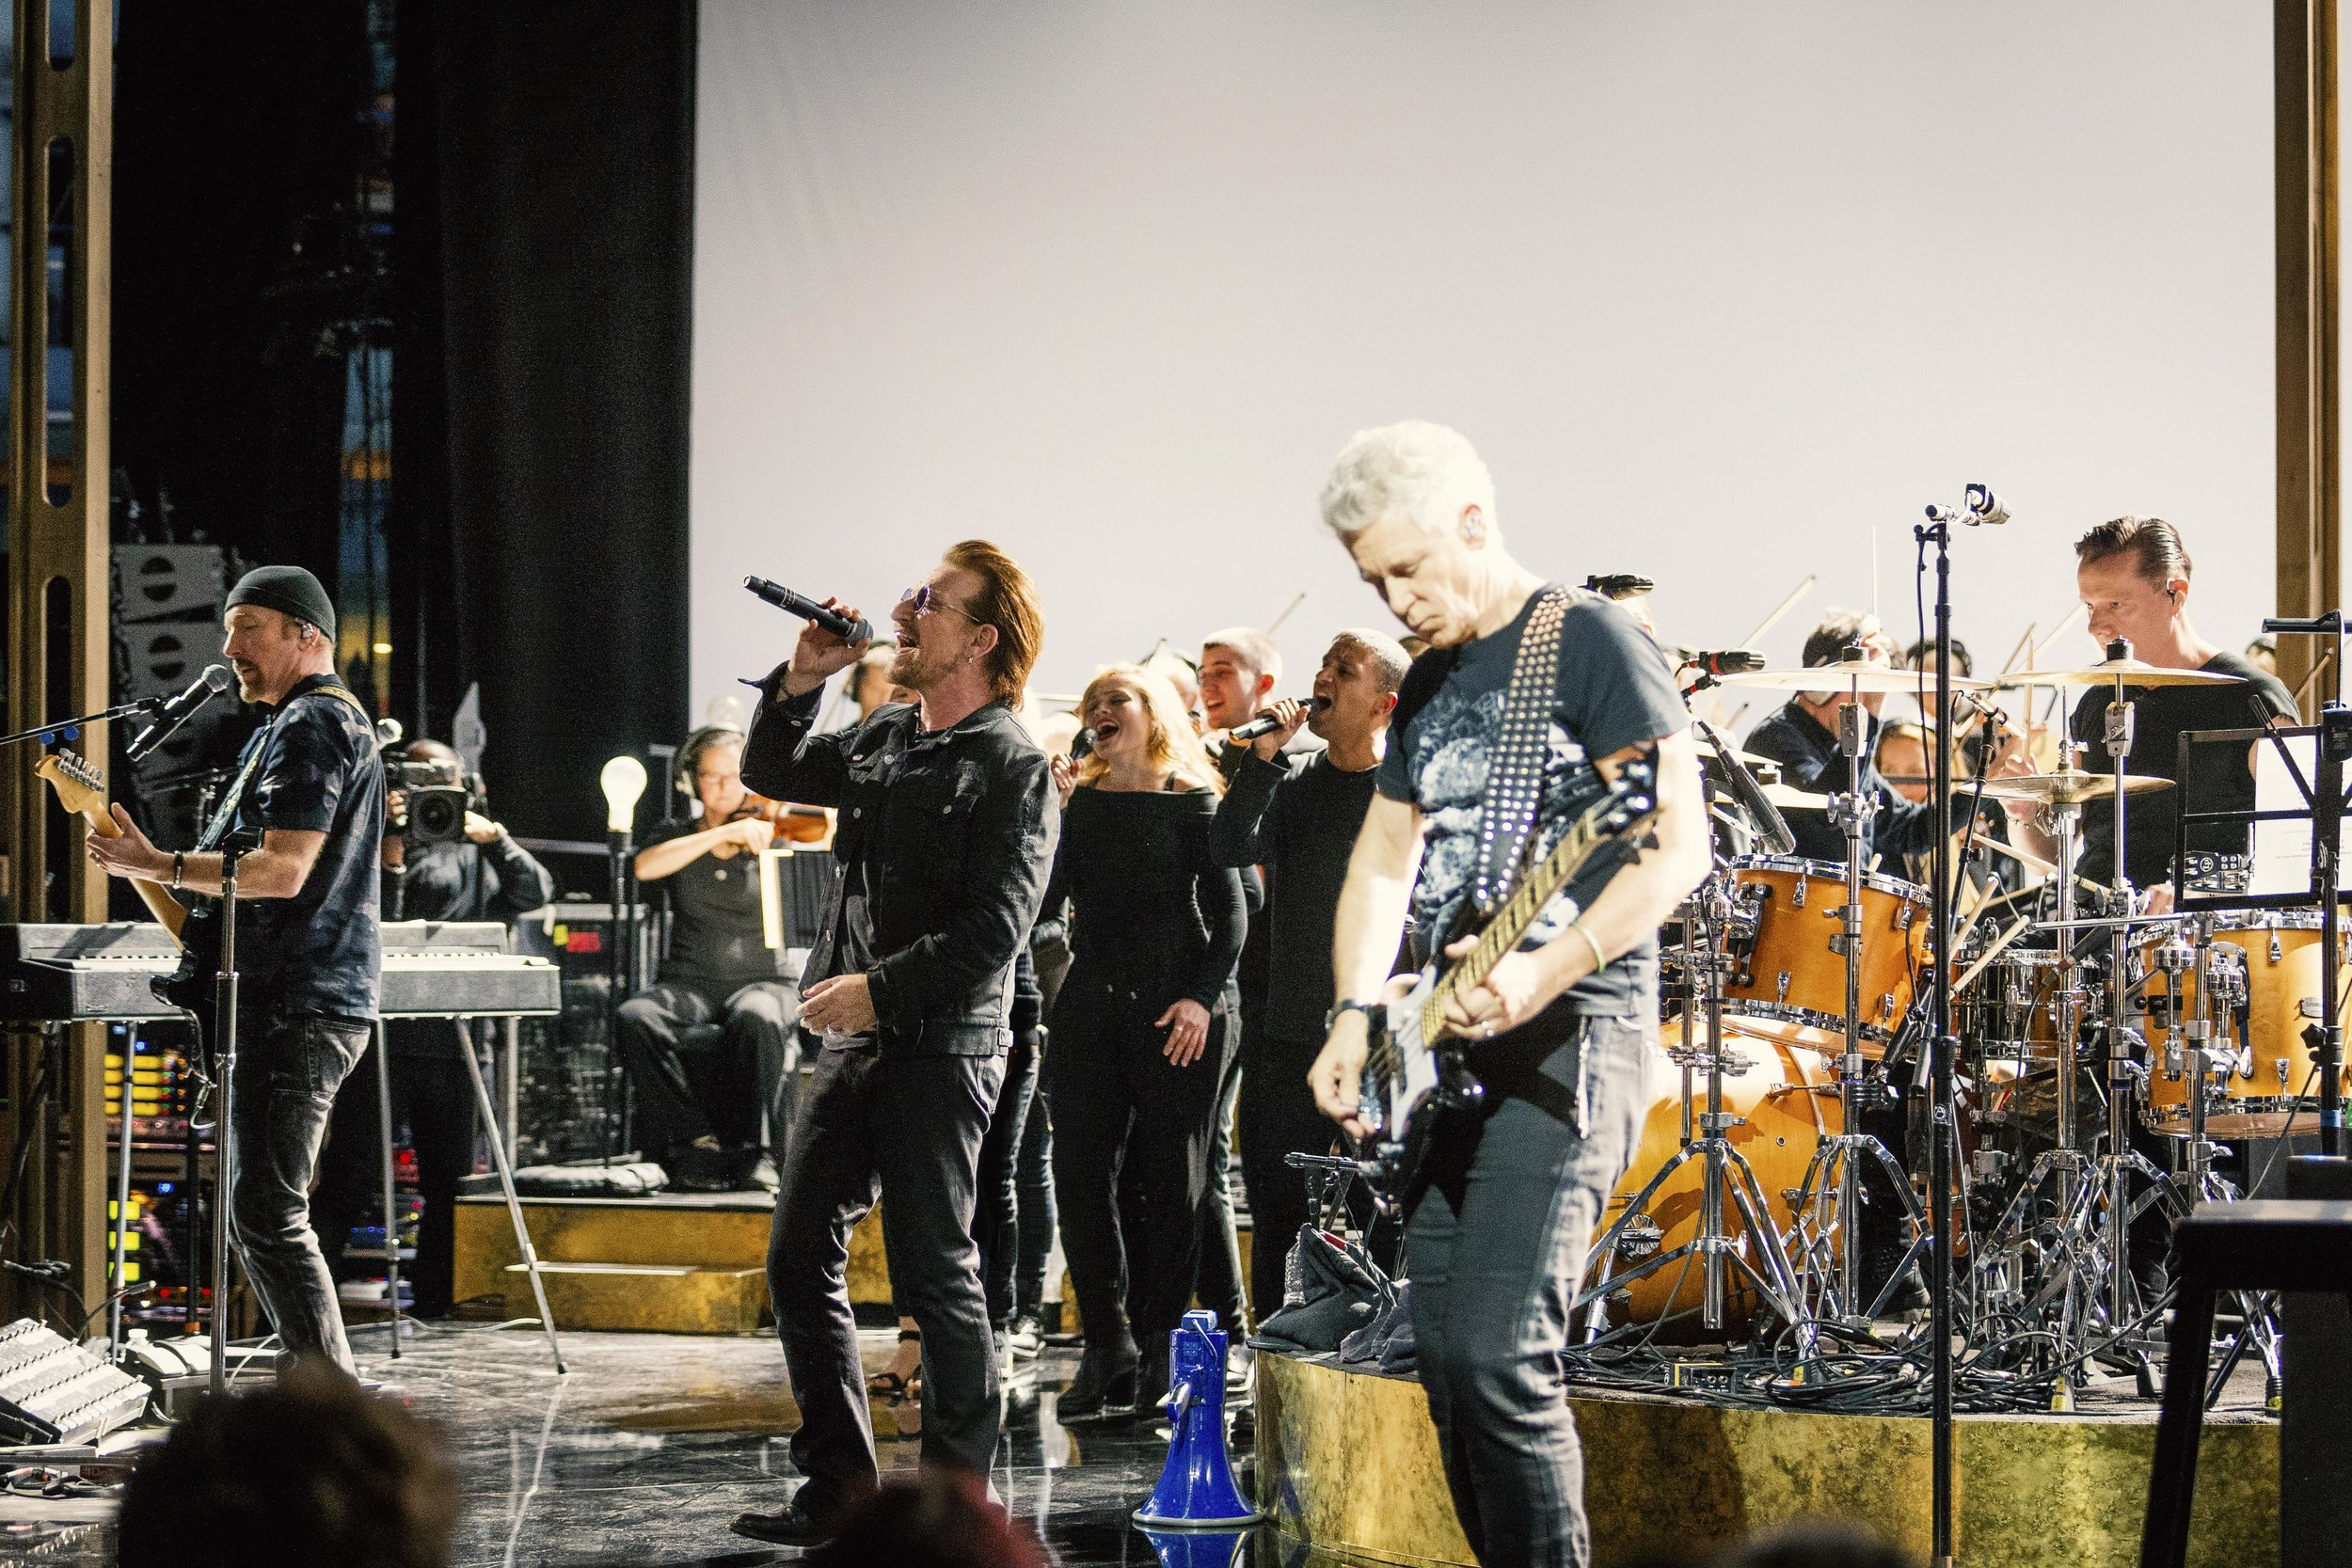 WARNING: Embargoed for publication until 10:00:01 on 05/12/2017 - Programme Name: U2 At the BBC  - TX: n/a - Episode: n/a (No. n/a) - Picture Shows: **Strictly Embargoed until 10:00:01 05/12/2017** U2 - (C) BBC  - Photographer: Guy Levy WARNING: Embargoed for publication until 10:00:01 on 05/12/2017 - Programme Name: U2 At the BBC  - TX: n/a - Episode: n/a (No. n/a) - Picture Shows: **Strictly Embargoed until 10:00:01 05/12/2017** U2 - (C) BBC  - Photographer: Guy Levy